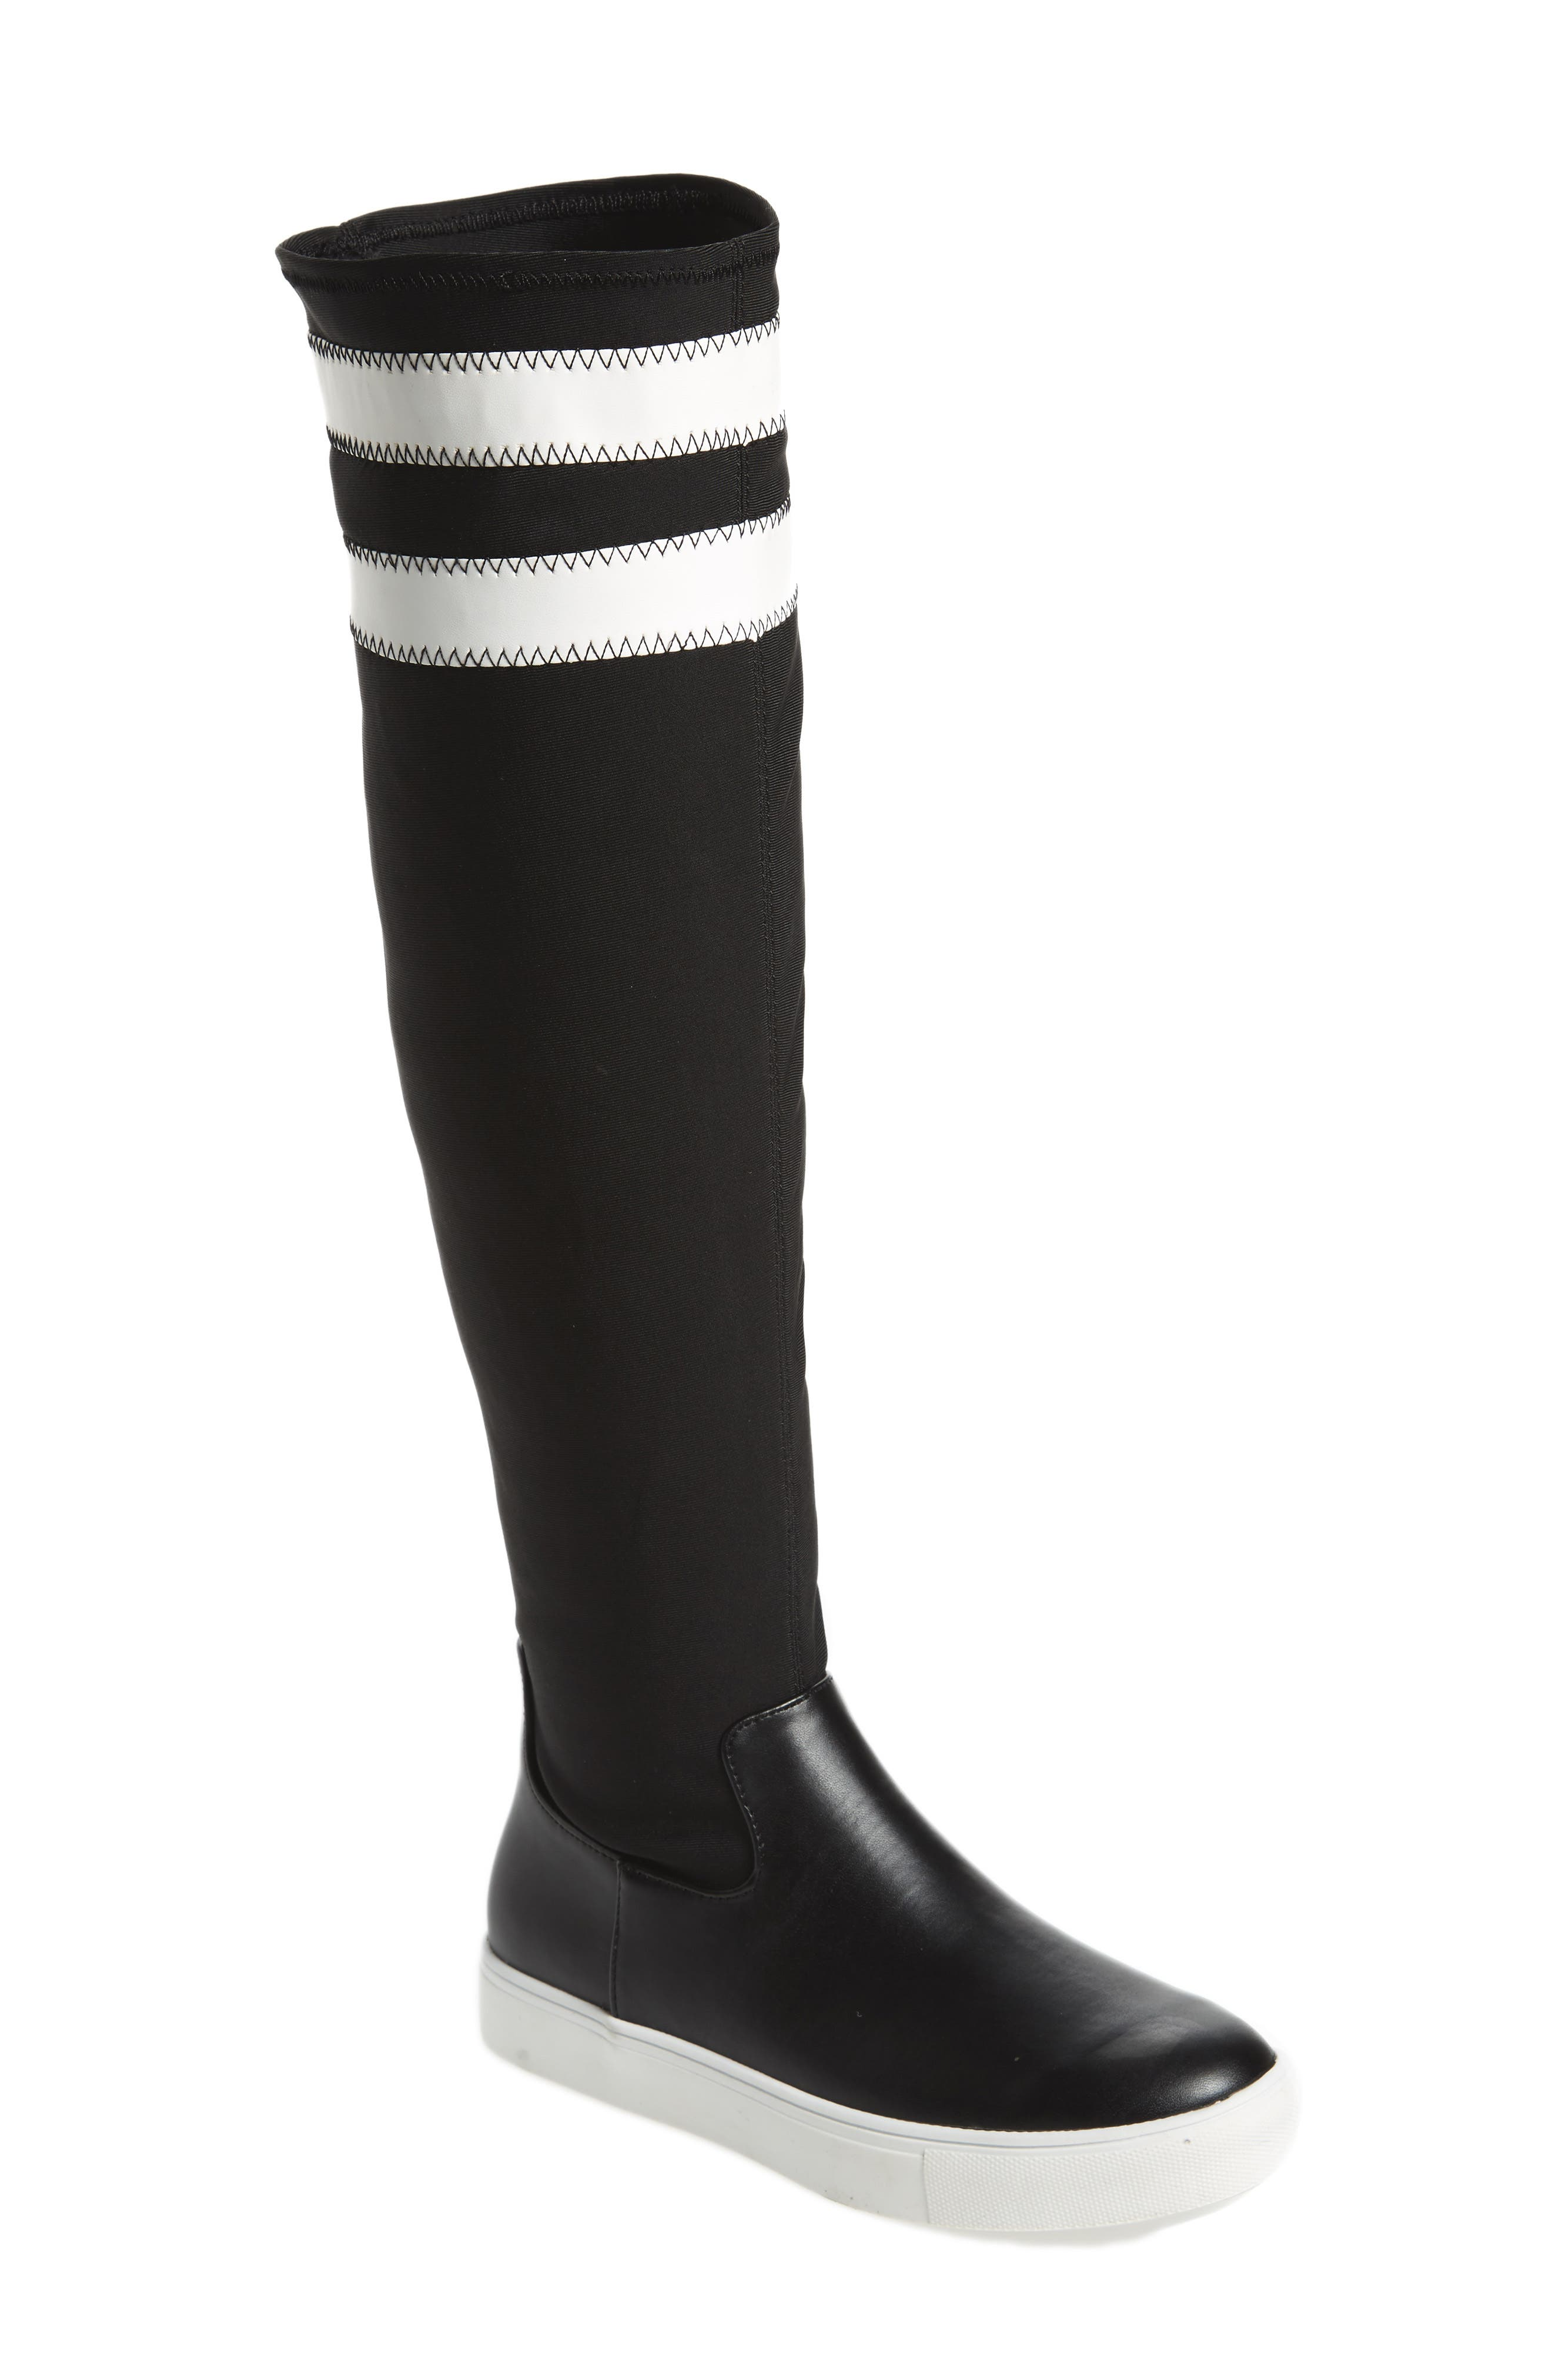 Melody Over the Knee Boot,                         Main,                         color, Black